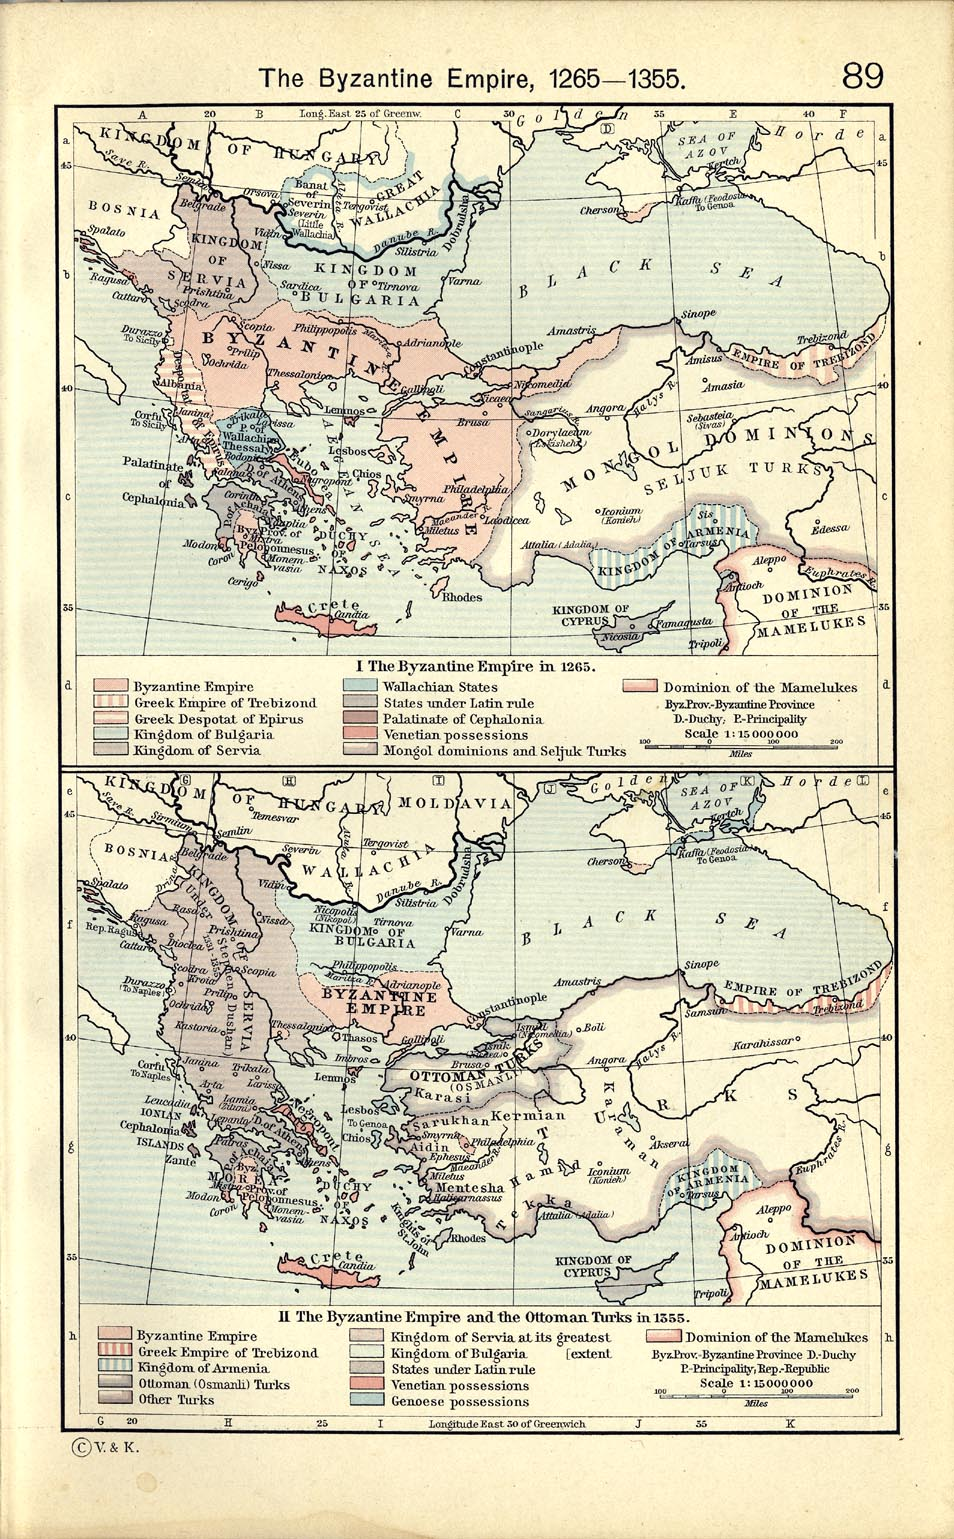 Holy Roman Empire Map 1000.Holy Roman Empire Map 1000 82572 Loadtve